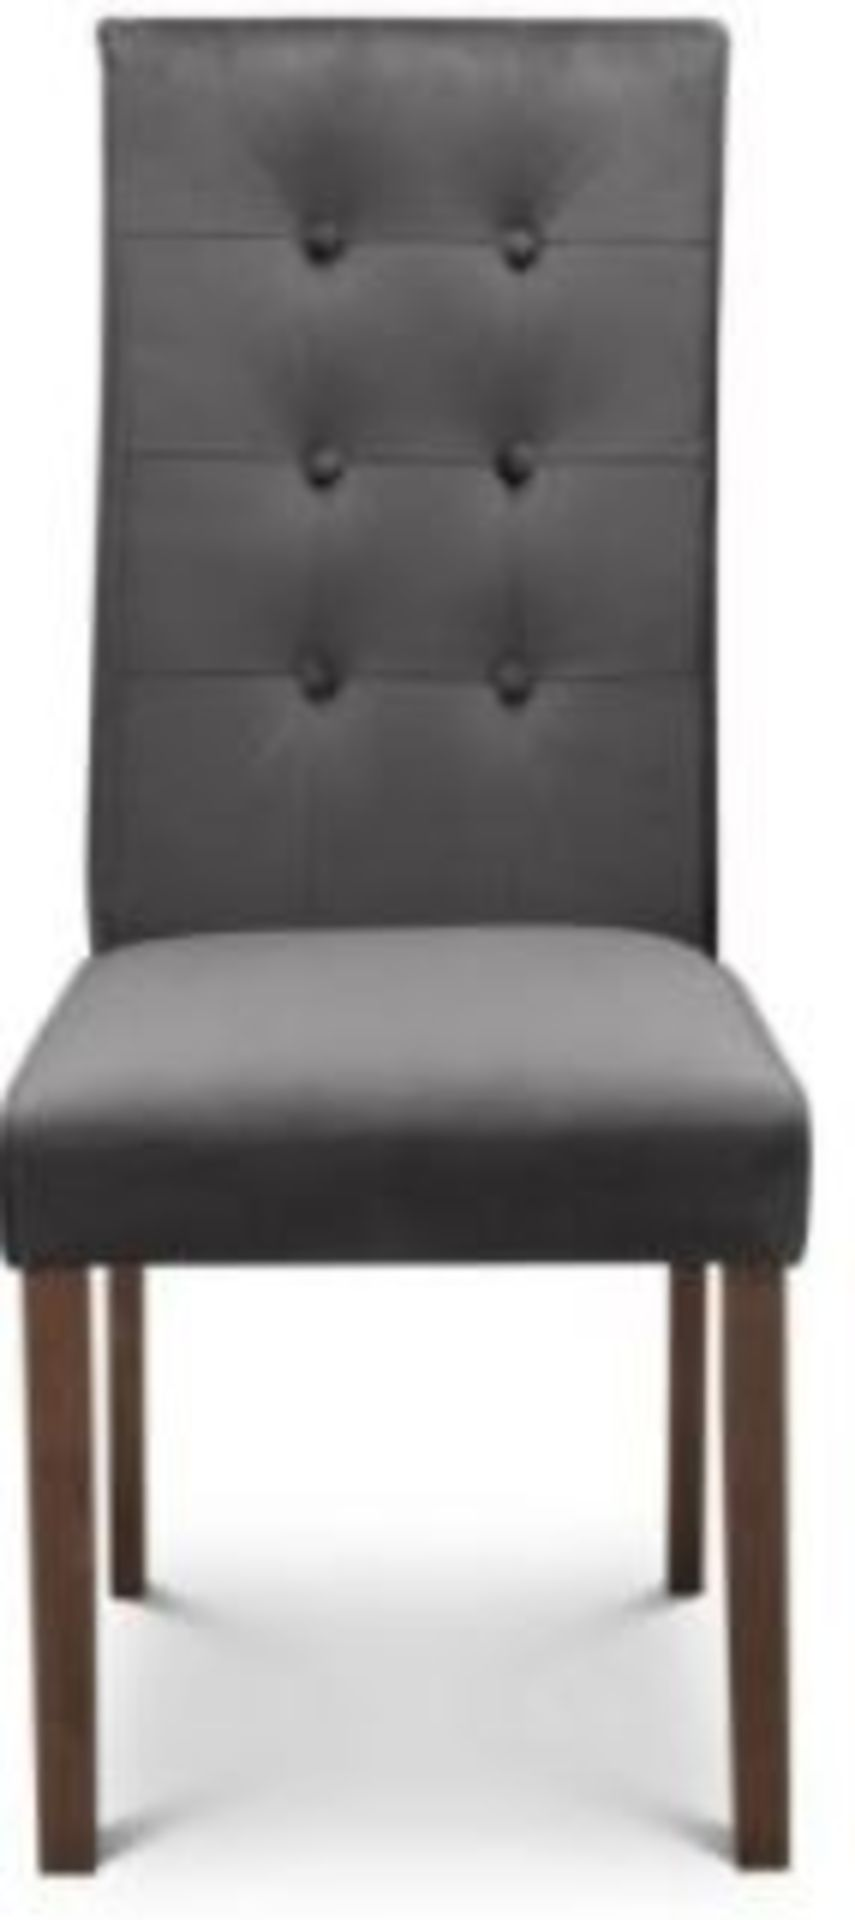 VONCILE UPHOLSTERED DINING CHAIR (SET OF 2)